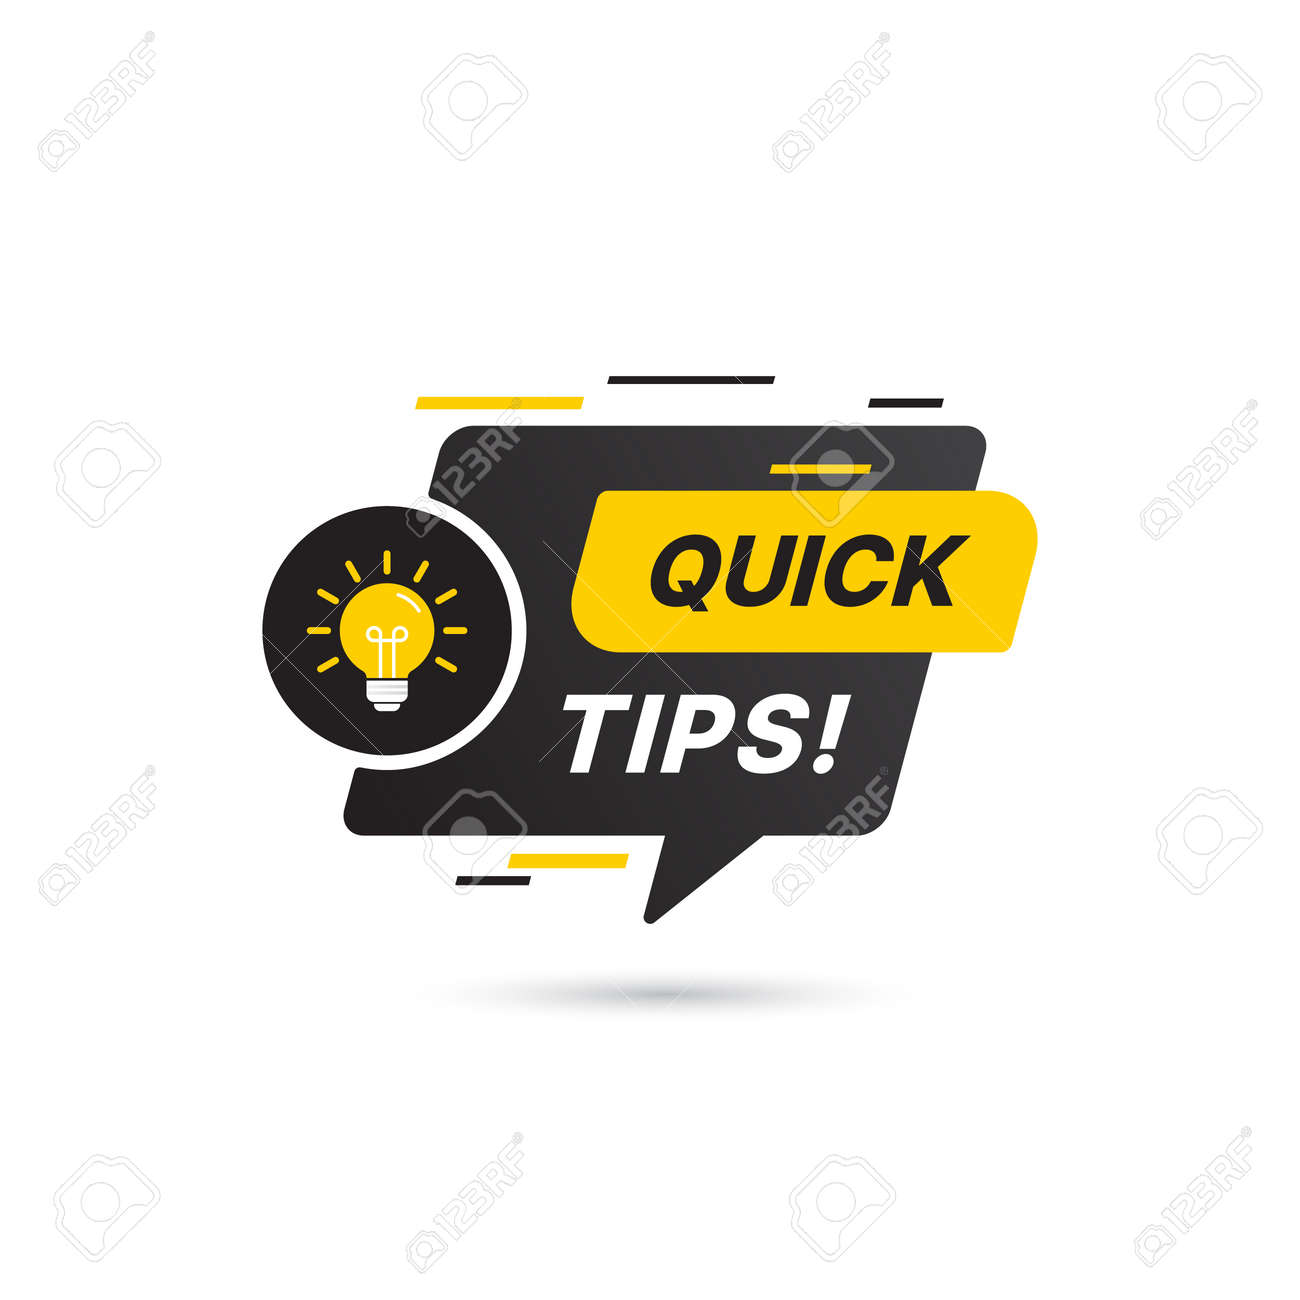 Quick tips, helpful tricks vector icon or symbol set with black and yellow color and light bulb element suitable for web. emblems and banners vector set isolated - 162382347